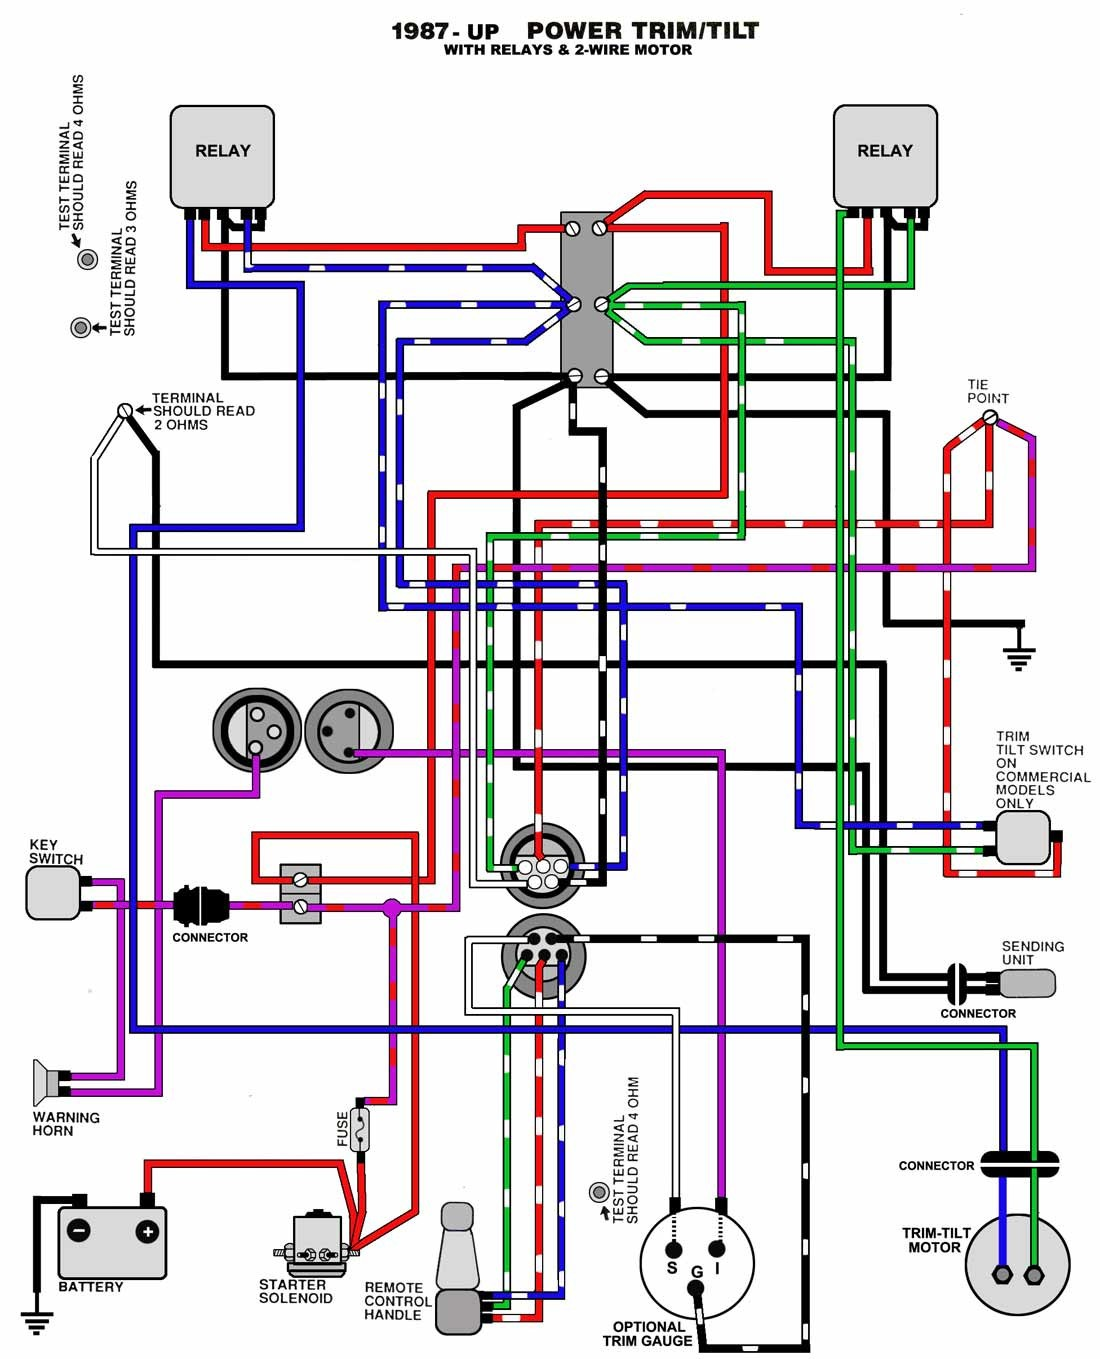 suzuki outboard tachometer installation - wiring diagram system site-norm-a  - site-norm-a.ediliadesign.it  ediliadesign.it